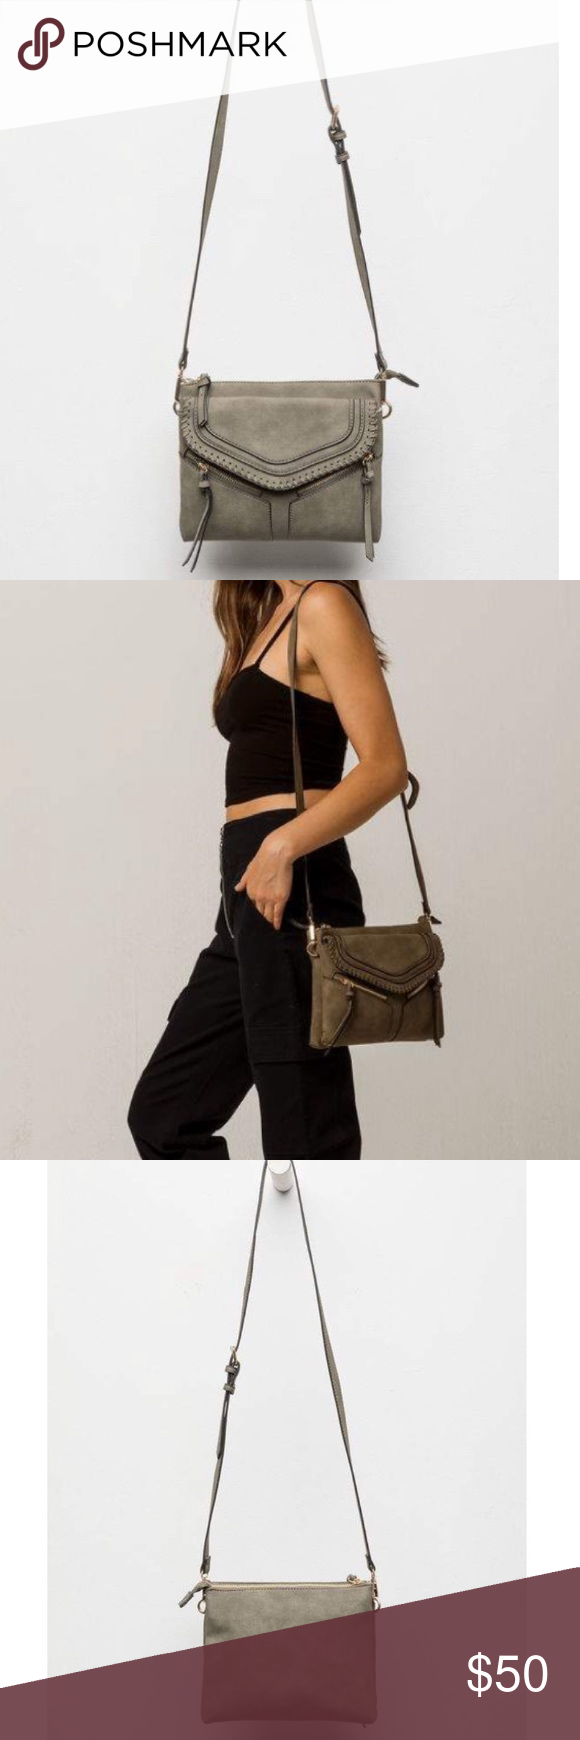 2db3d8bc9eb6 Free People Leanna Whipstitch Crossbody Bag Free People line Violet Ray  Leanna faux leather crossbody bag